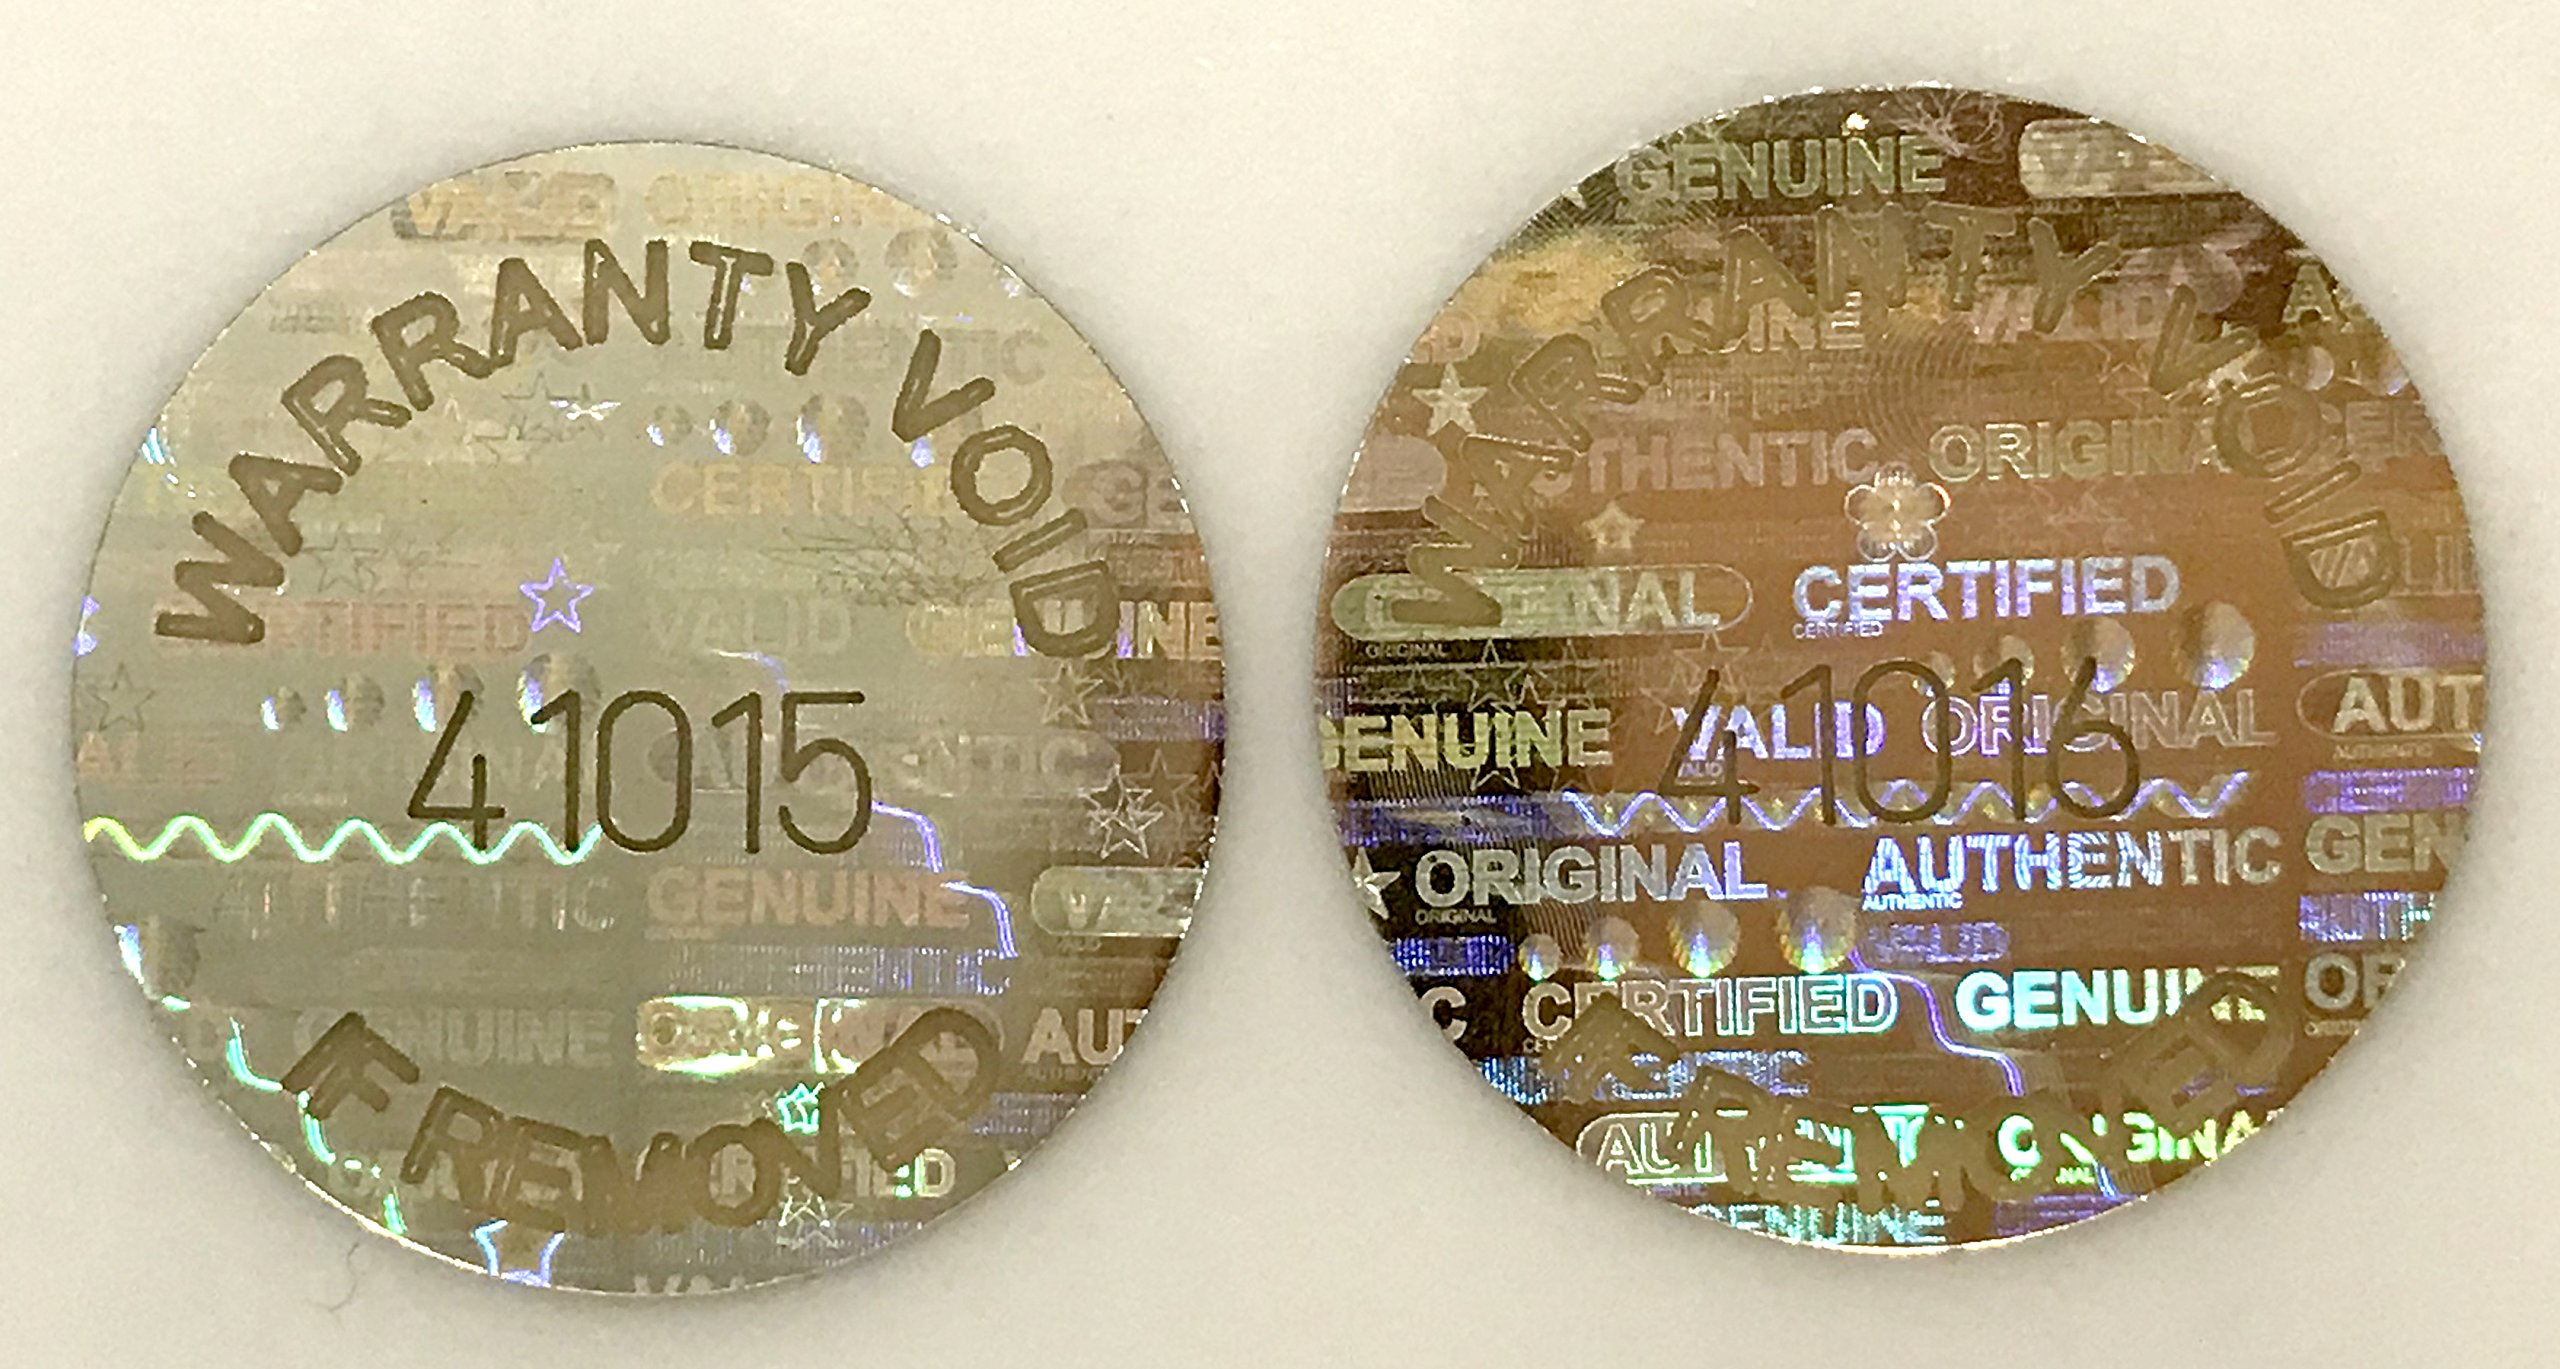 2,000 Gold Round Hologram Tamper Evident Security Labels/ Stickers Tinted Covert Laser Serialized: Unique - Size: 0.625'' Diameter (16mm)